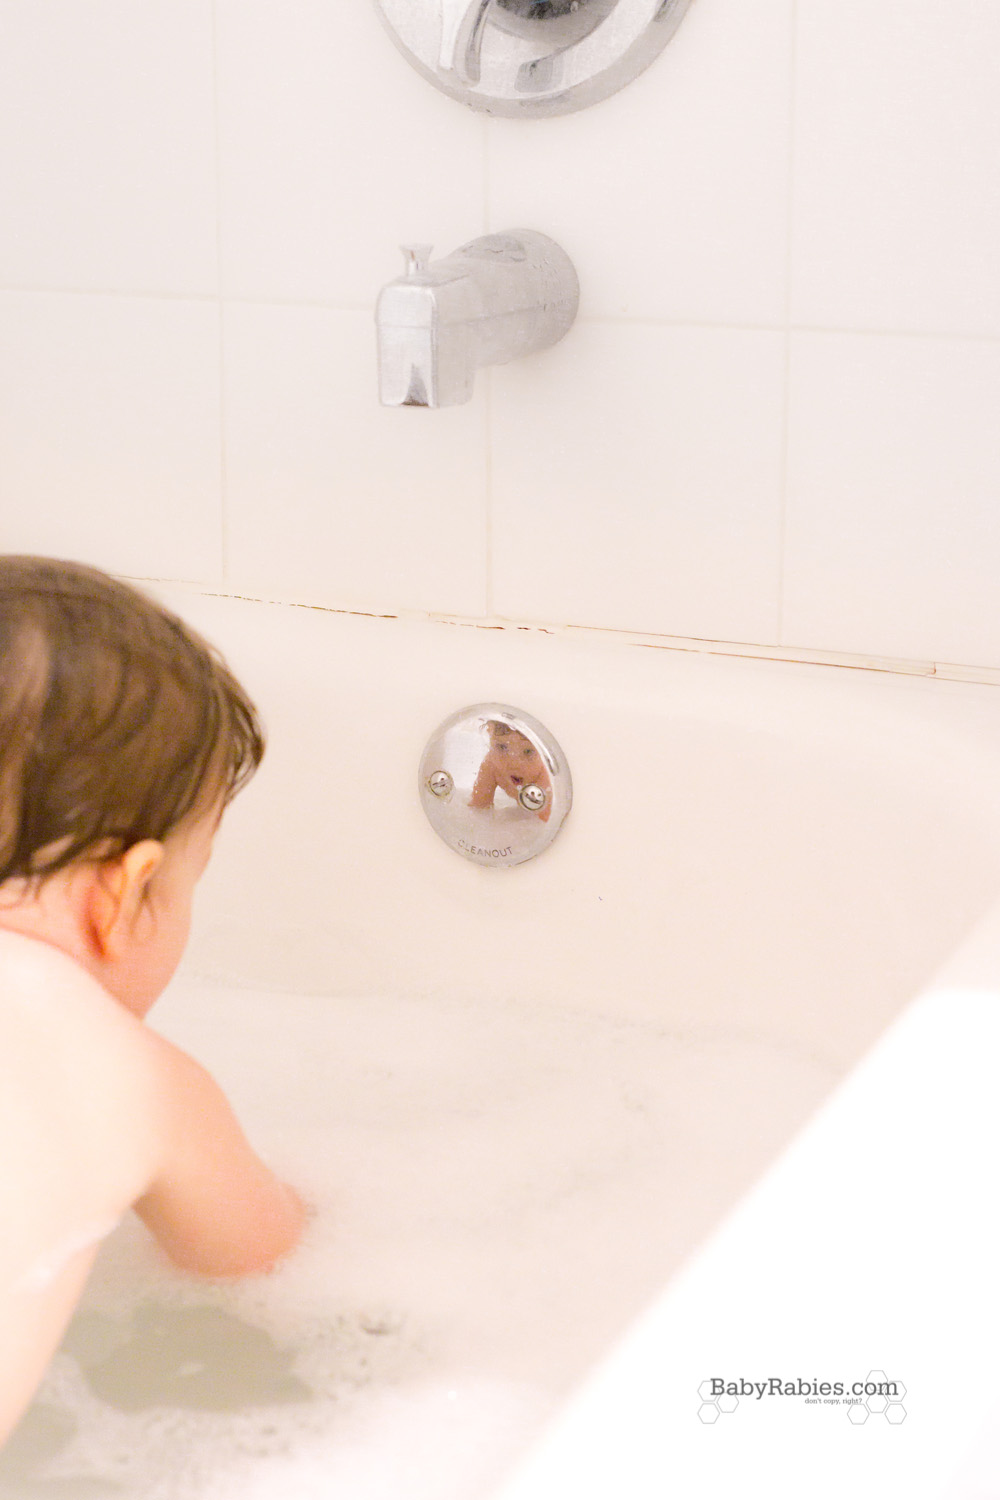 The Baby In The Bathtub